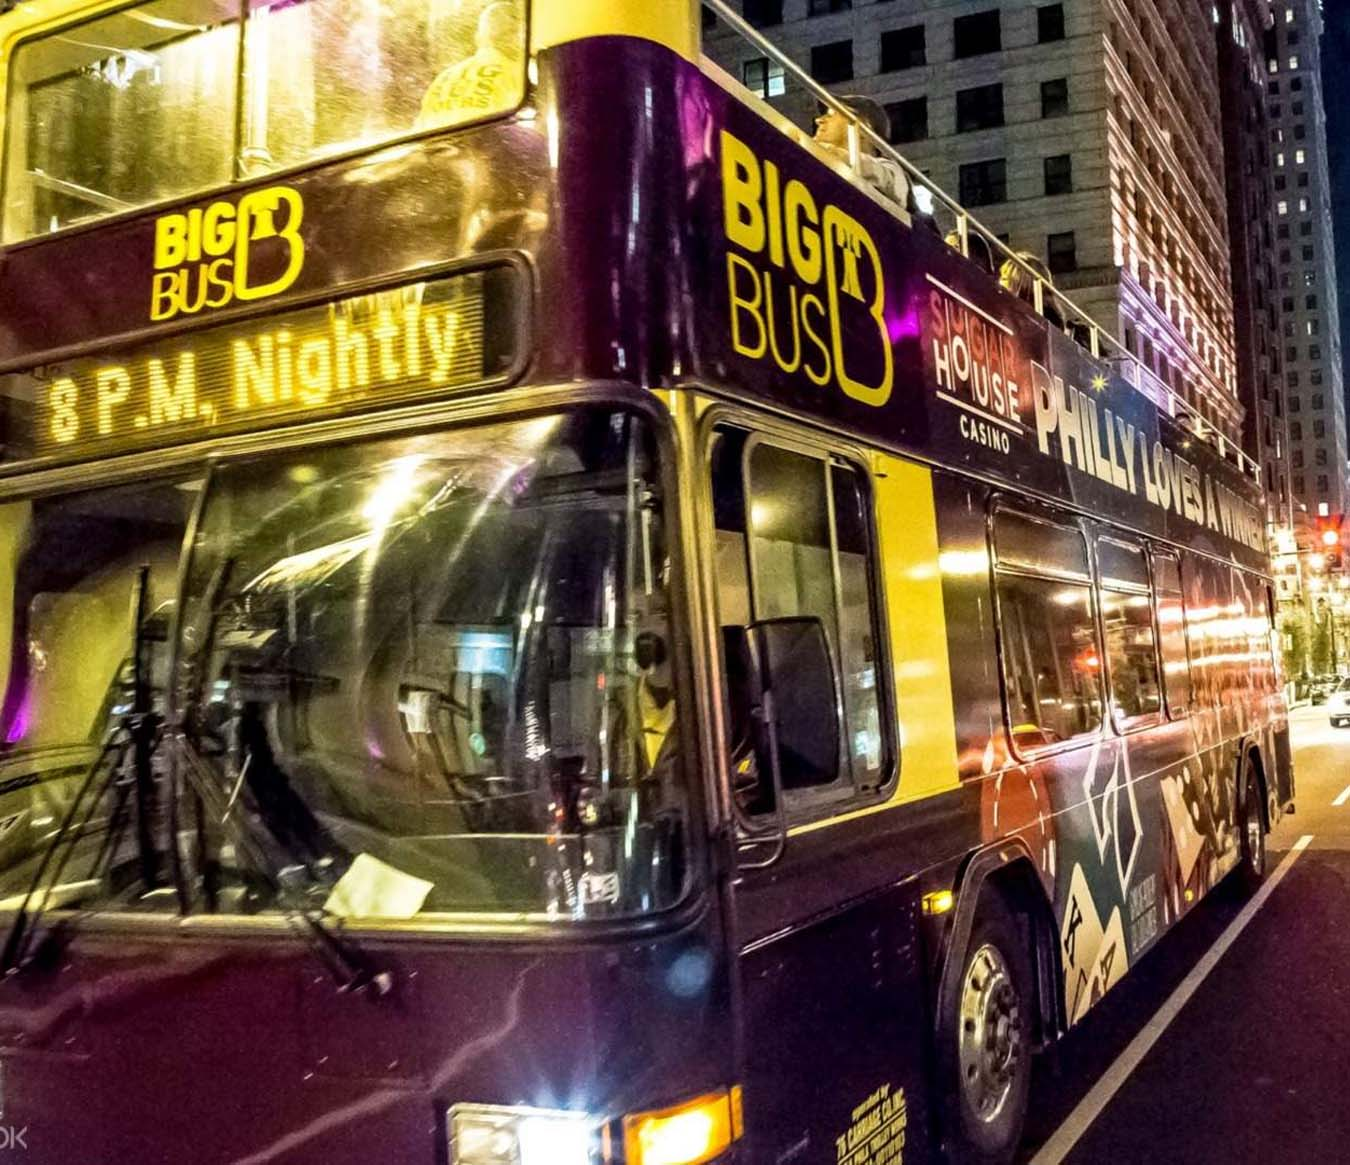 Things to Do in Philadelphia - Philadelphia Big Bus Hop-On Hop-Off Tour